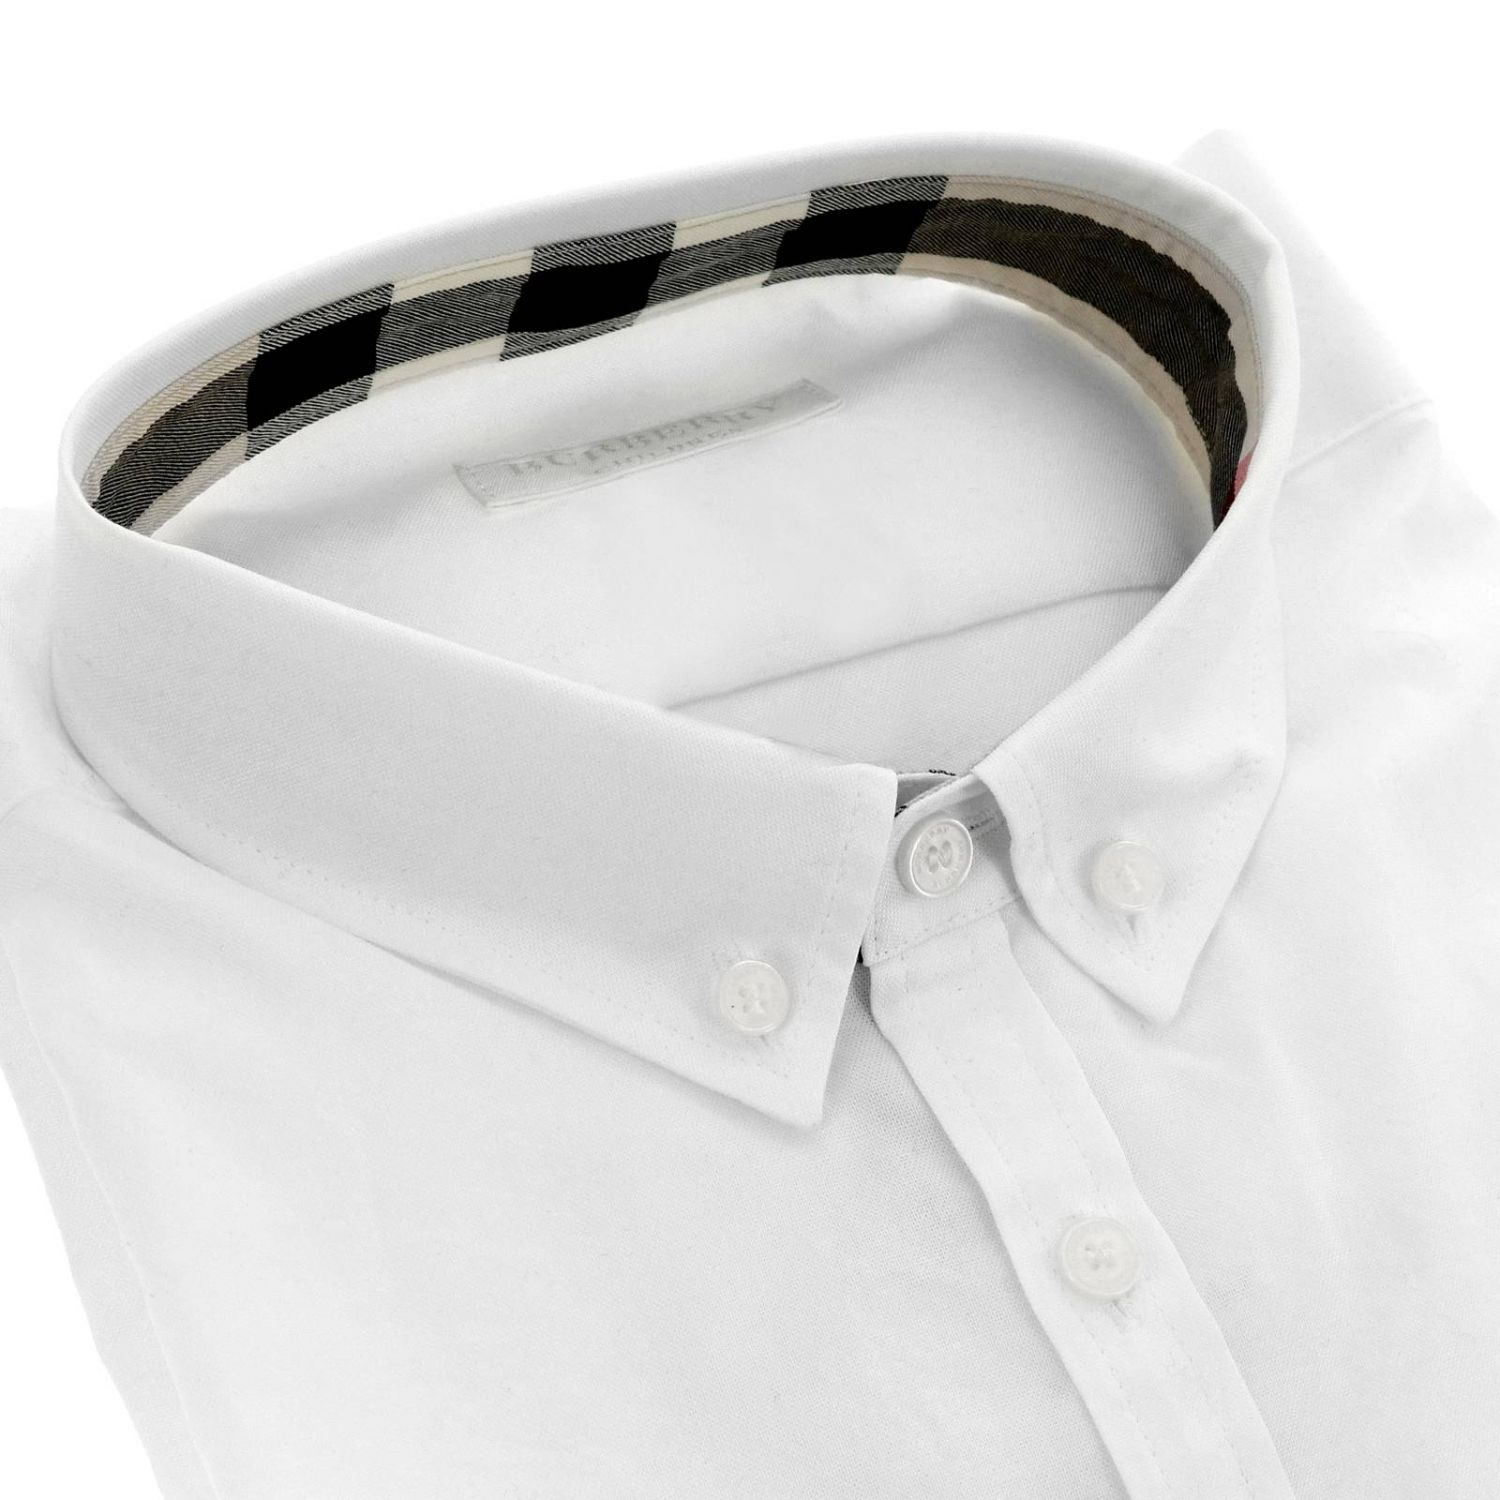 Camicia con collo button down interni check e taschino a toppa Burberry bianco 2